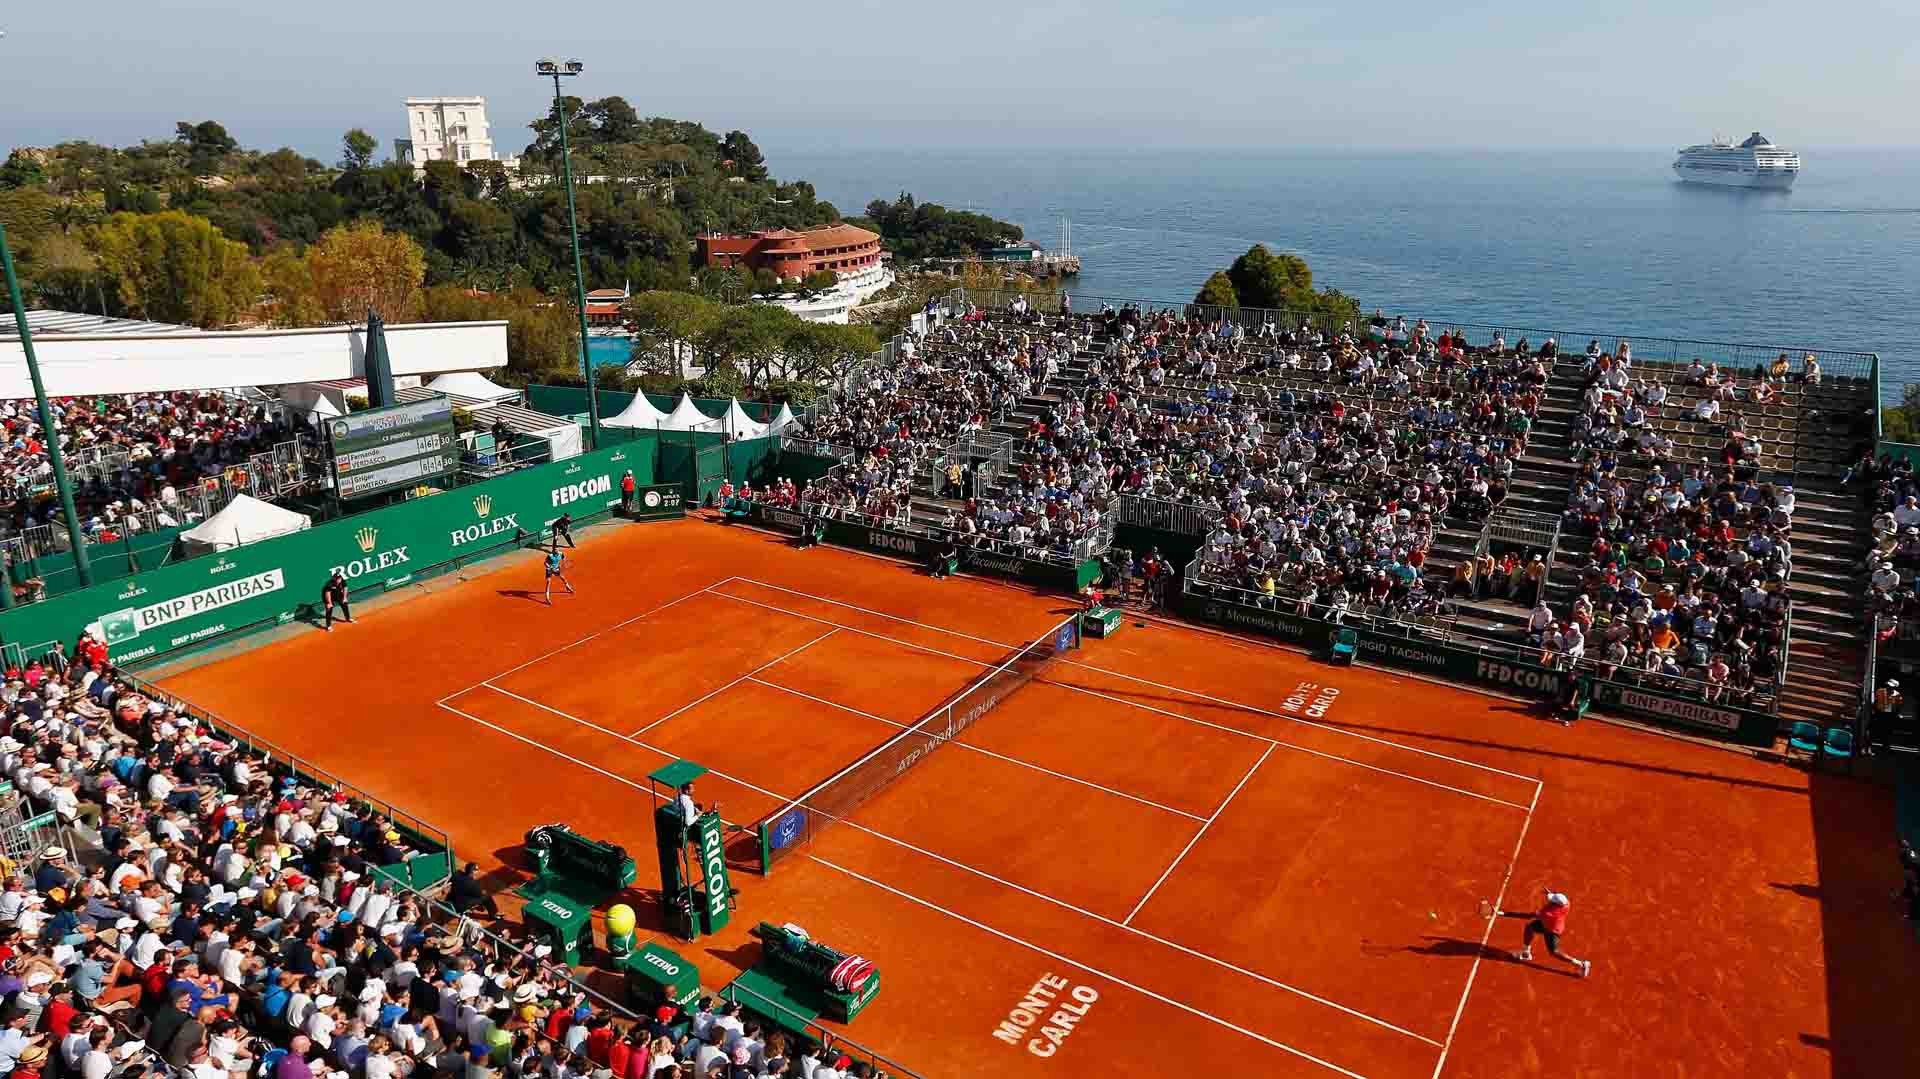 Grigor Dimitrov takes his fans around to the picturesque beauty of Monte Carlo club via a youtube video